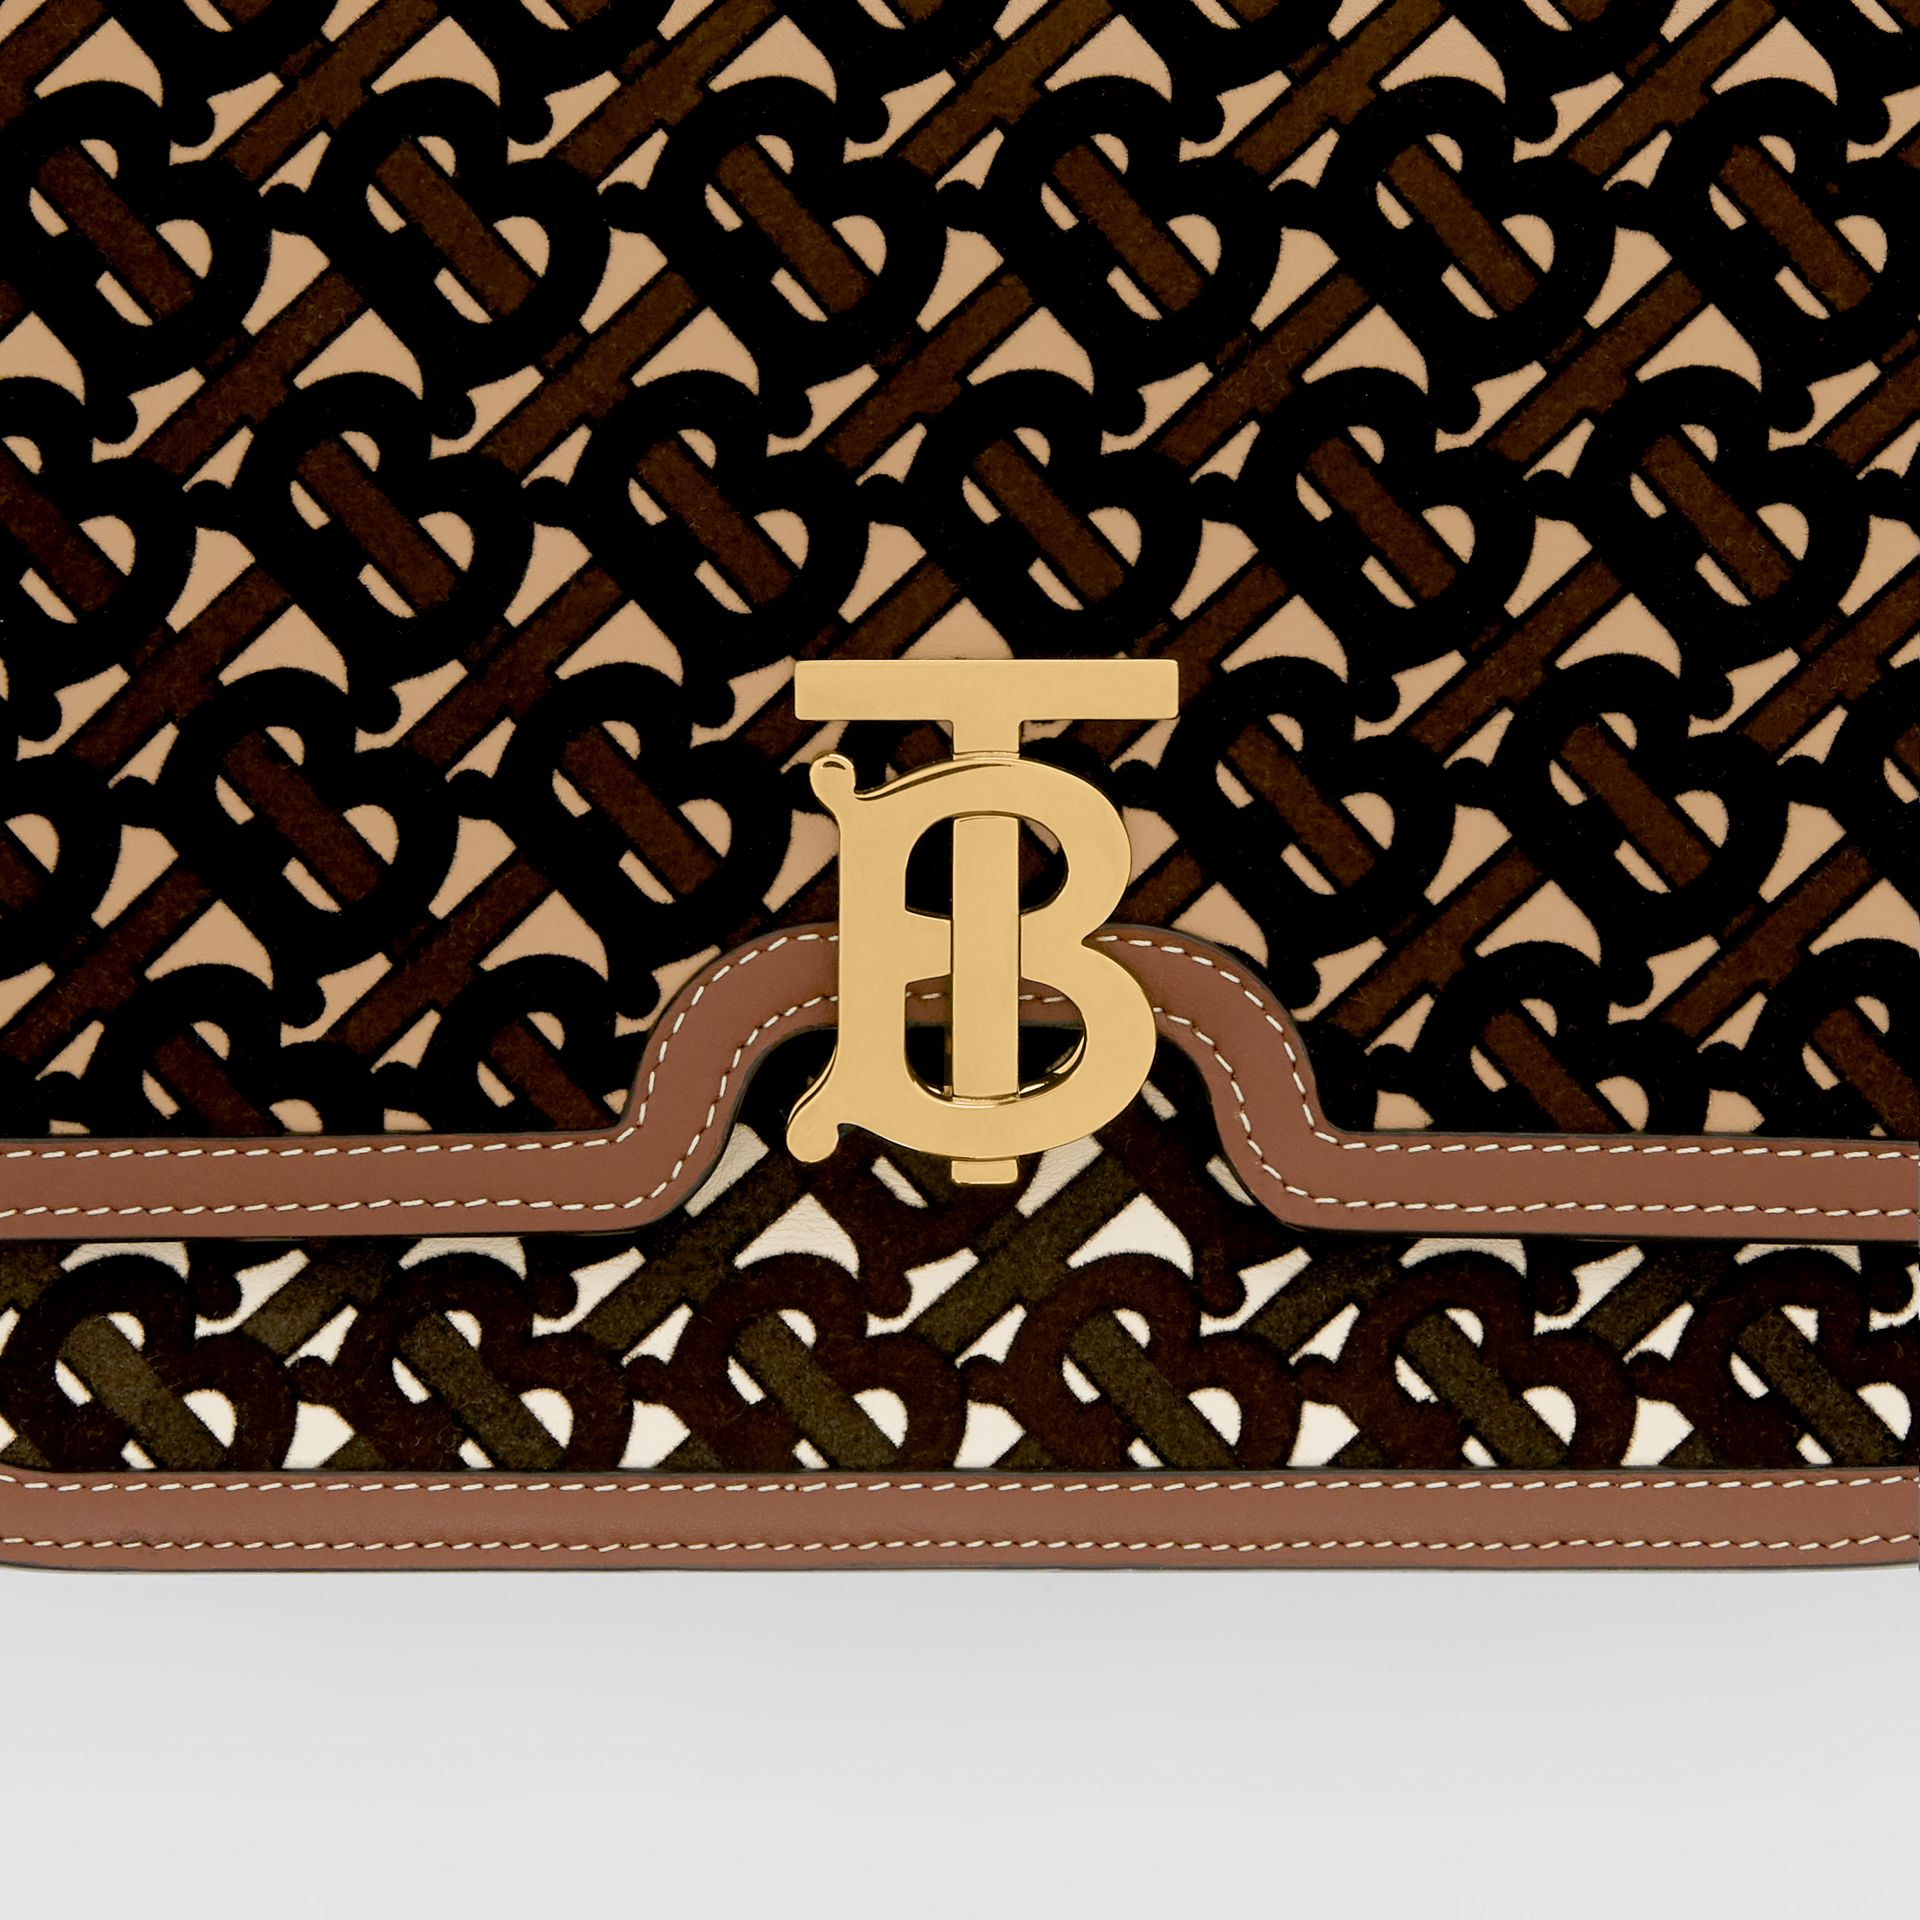 Medium Monogram Flocked Leather TB Bag in Dark Brown - Women | Burberry - gallery image 1